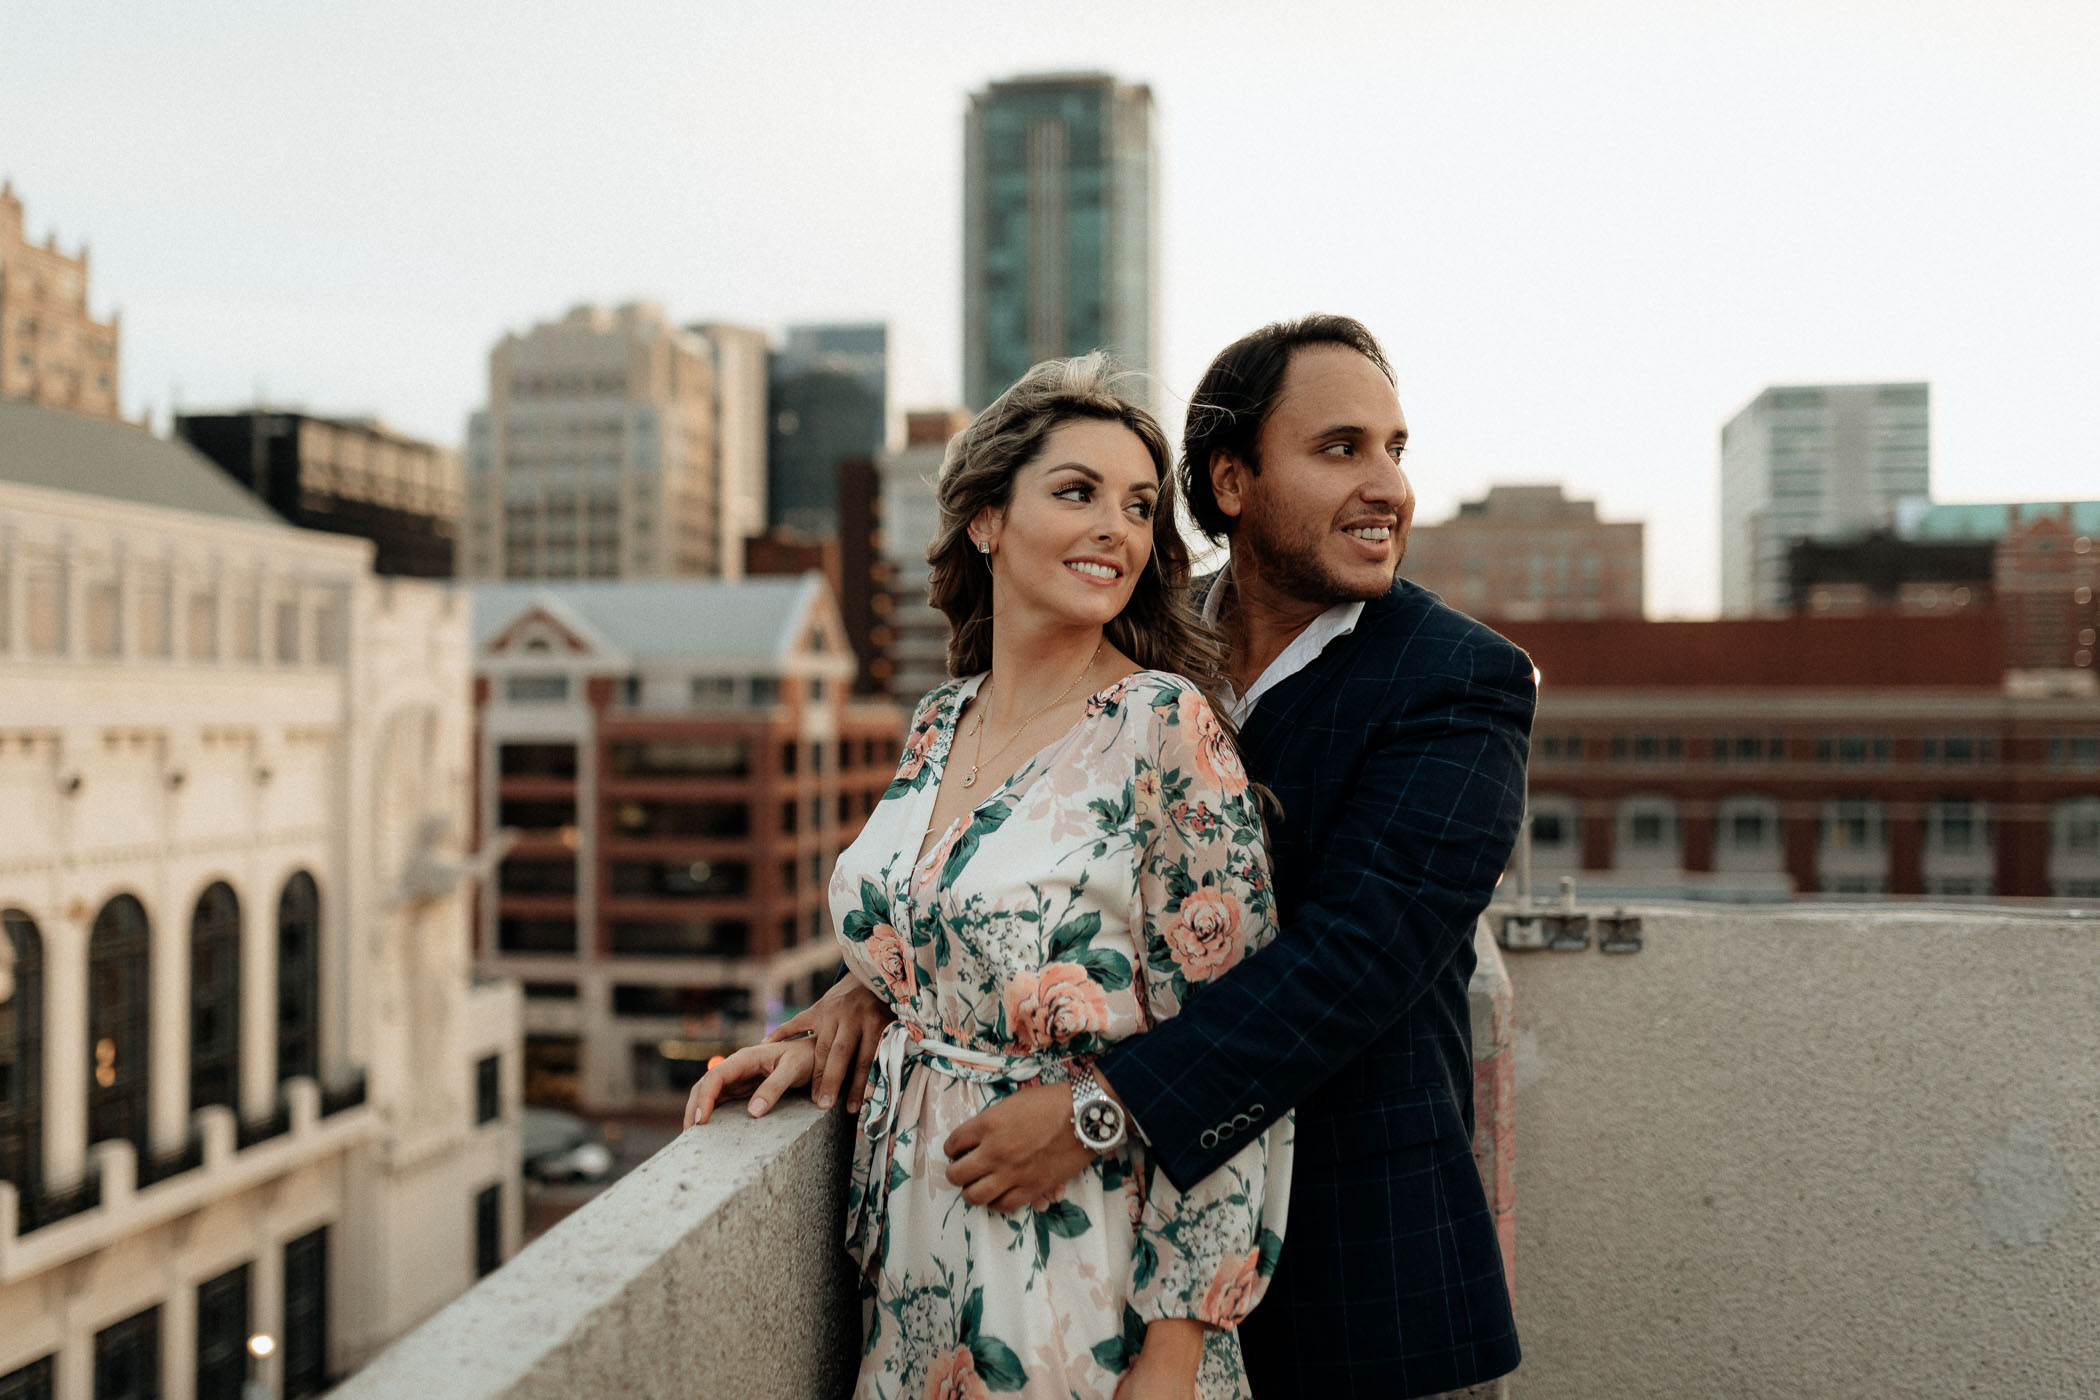 Moody engagement photo in downtown fort worth at sunset